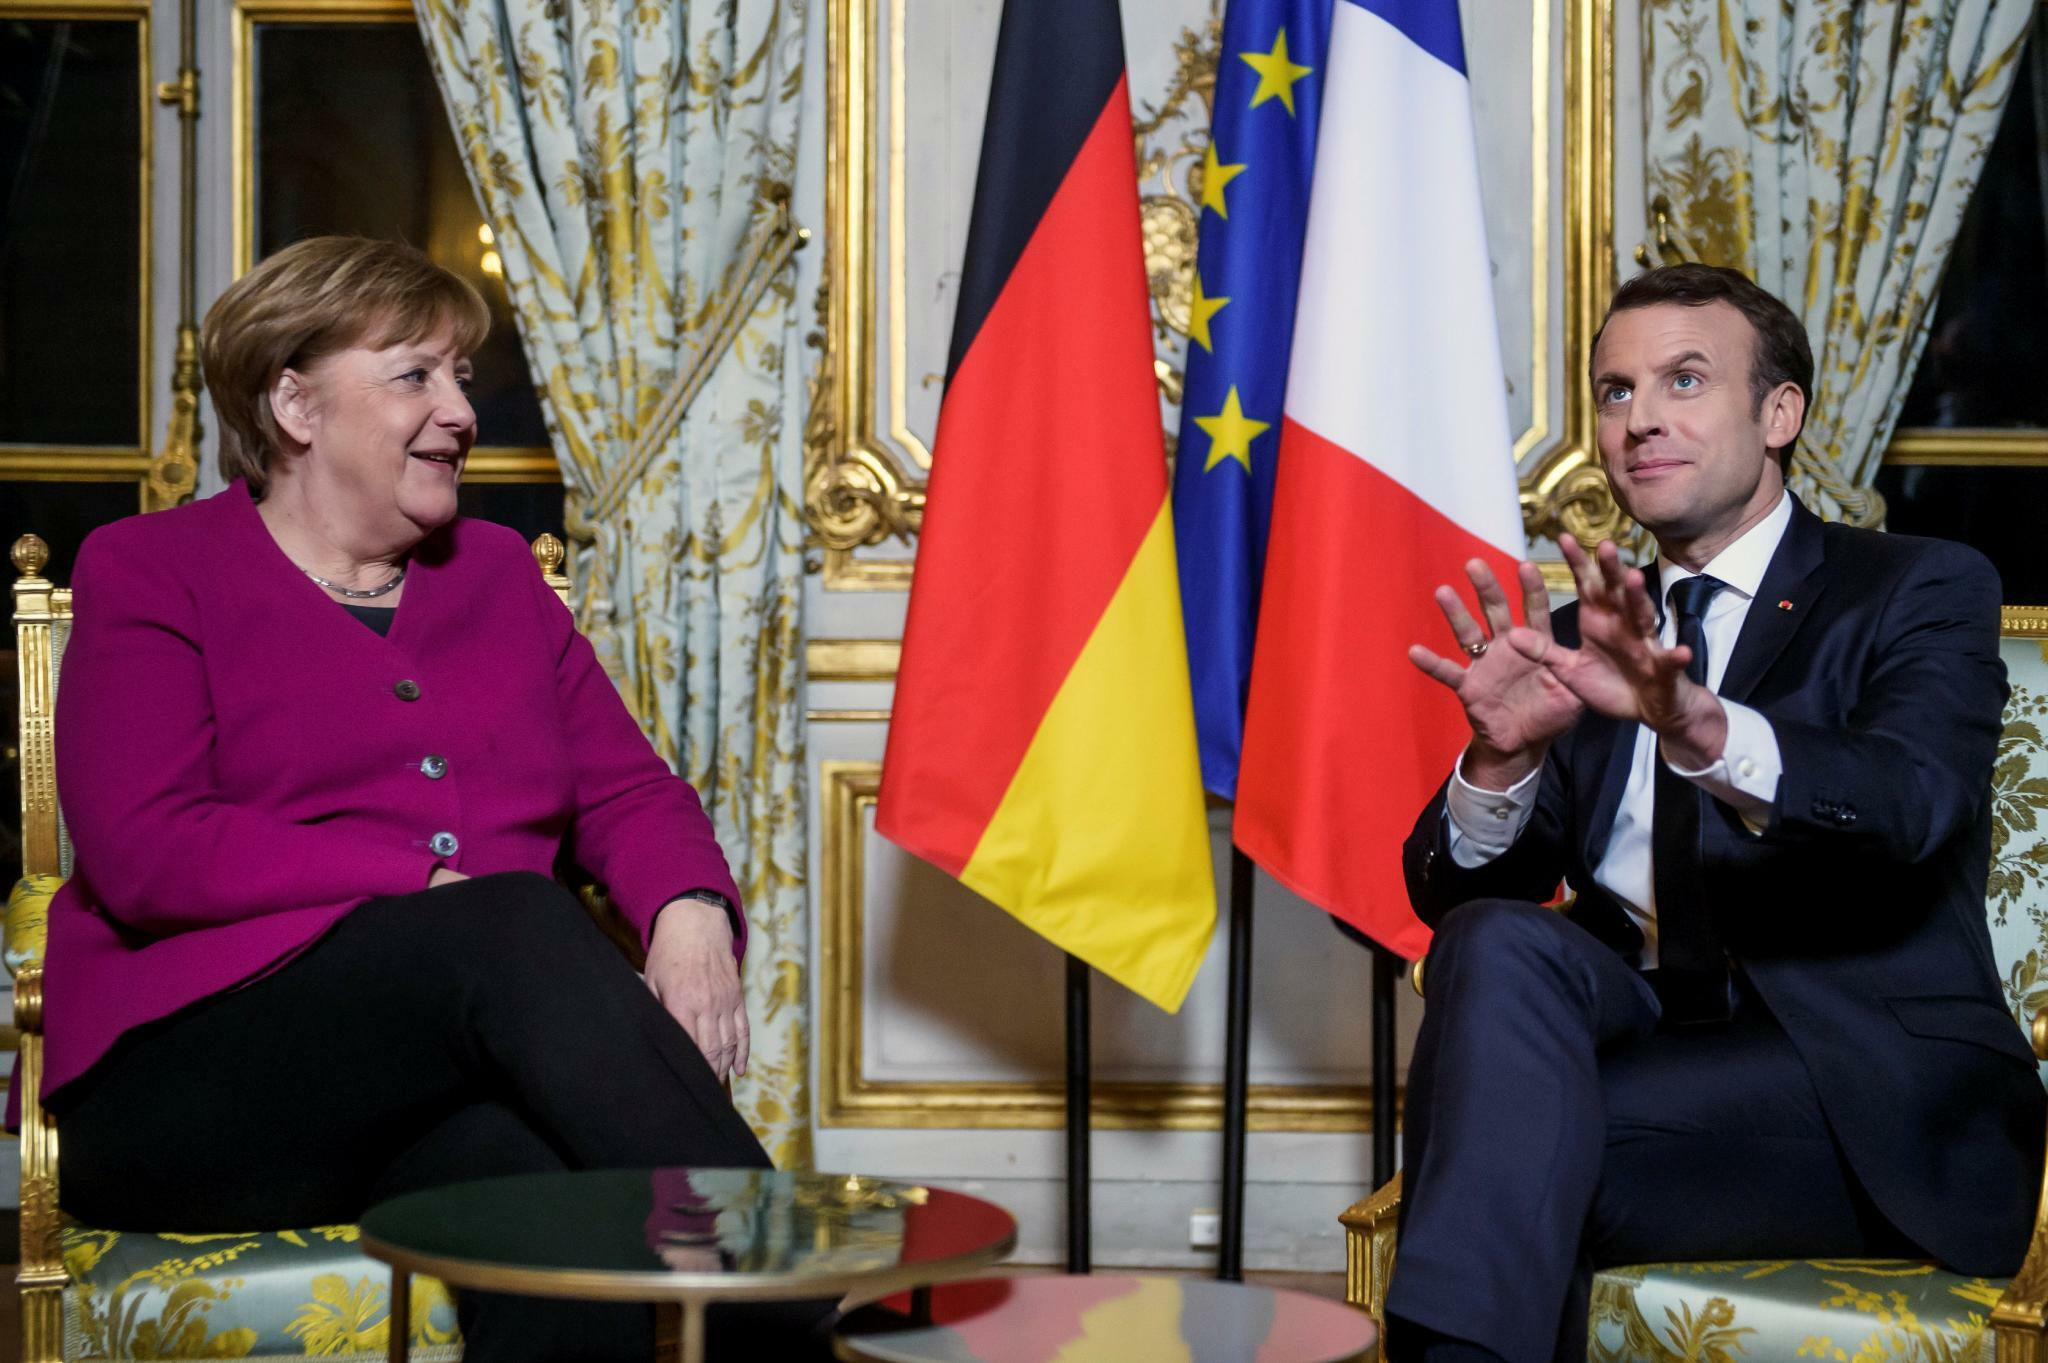 http://tagesspiegel.de/images/-french-president-emmanuel-macron-and-german-chancellor-angela-merkel-react-during-their-meeting-at-the-elysee-palace-in-paris/20869100/1-format43.jpg